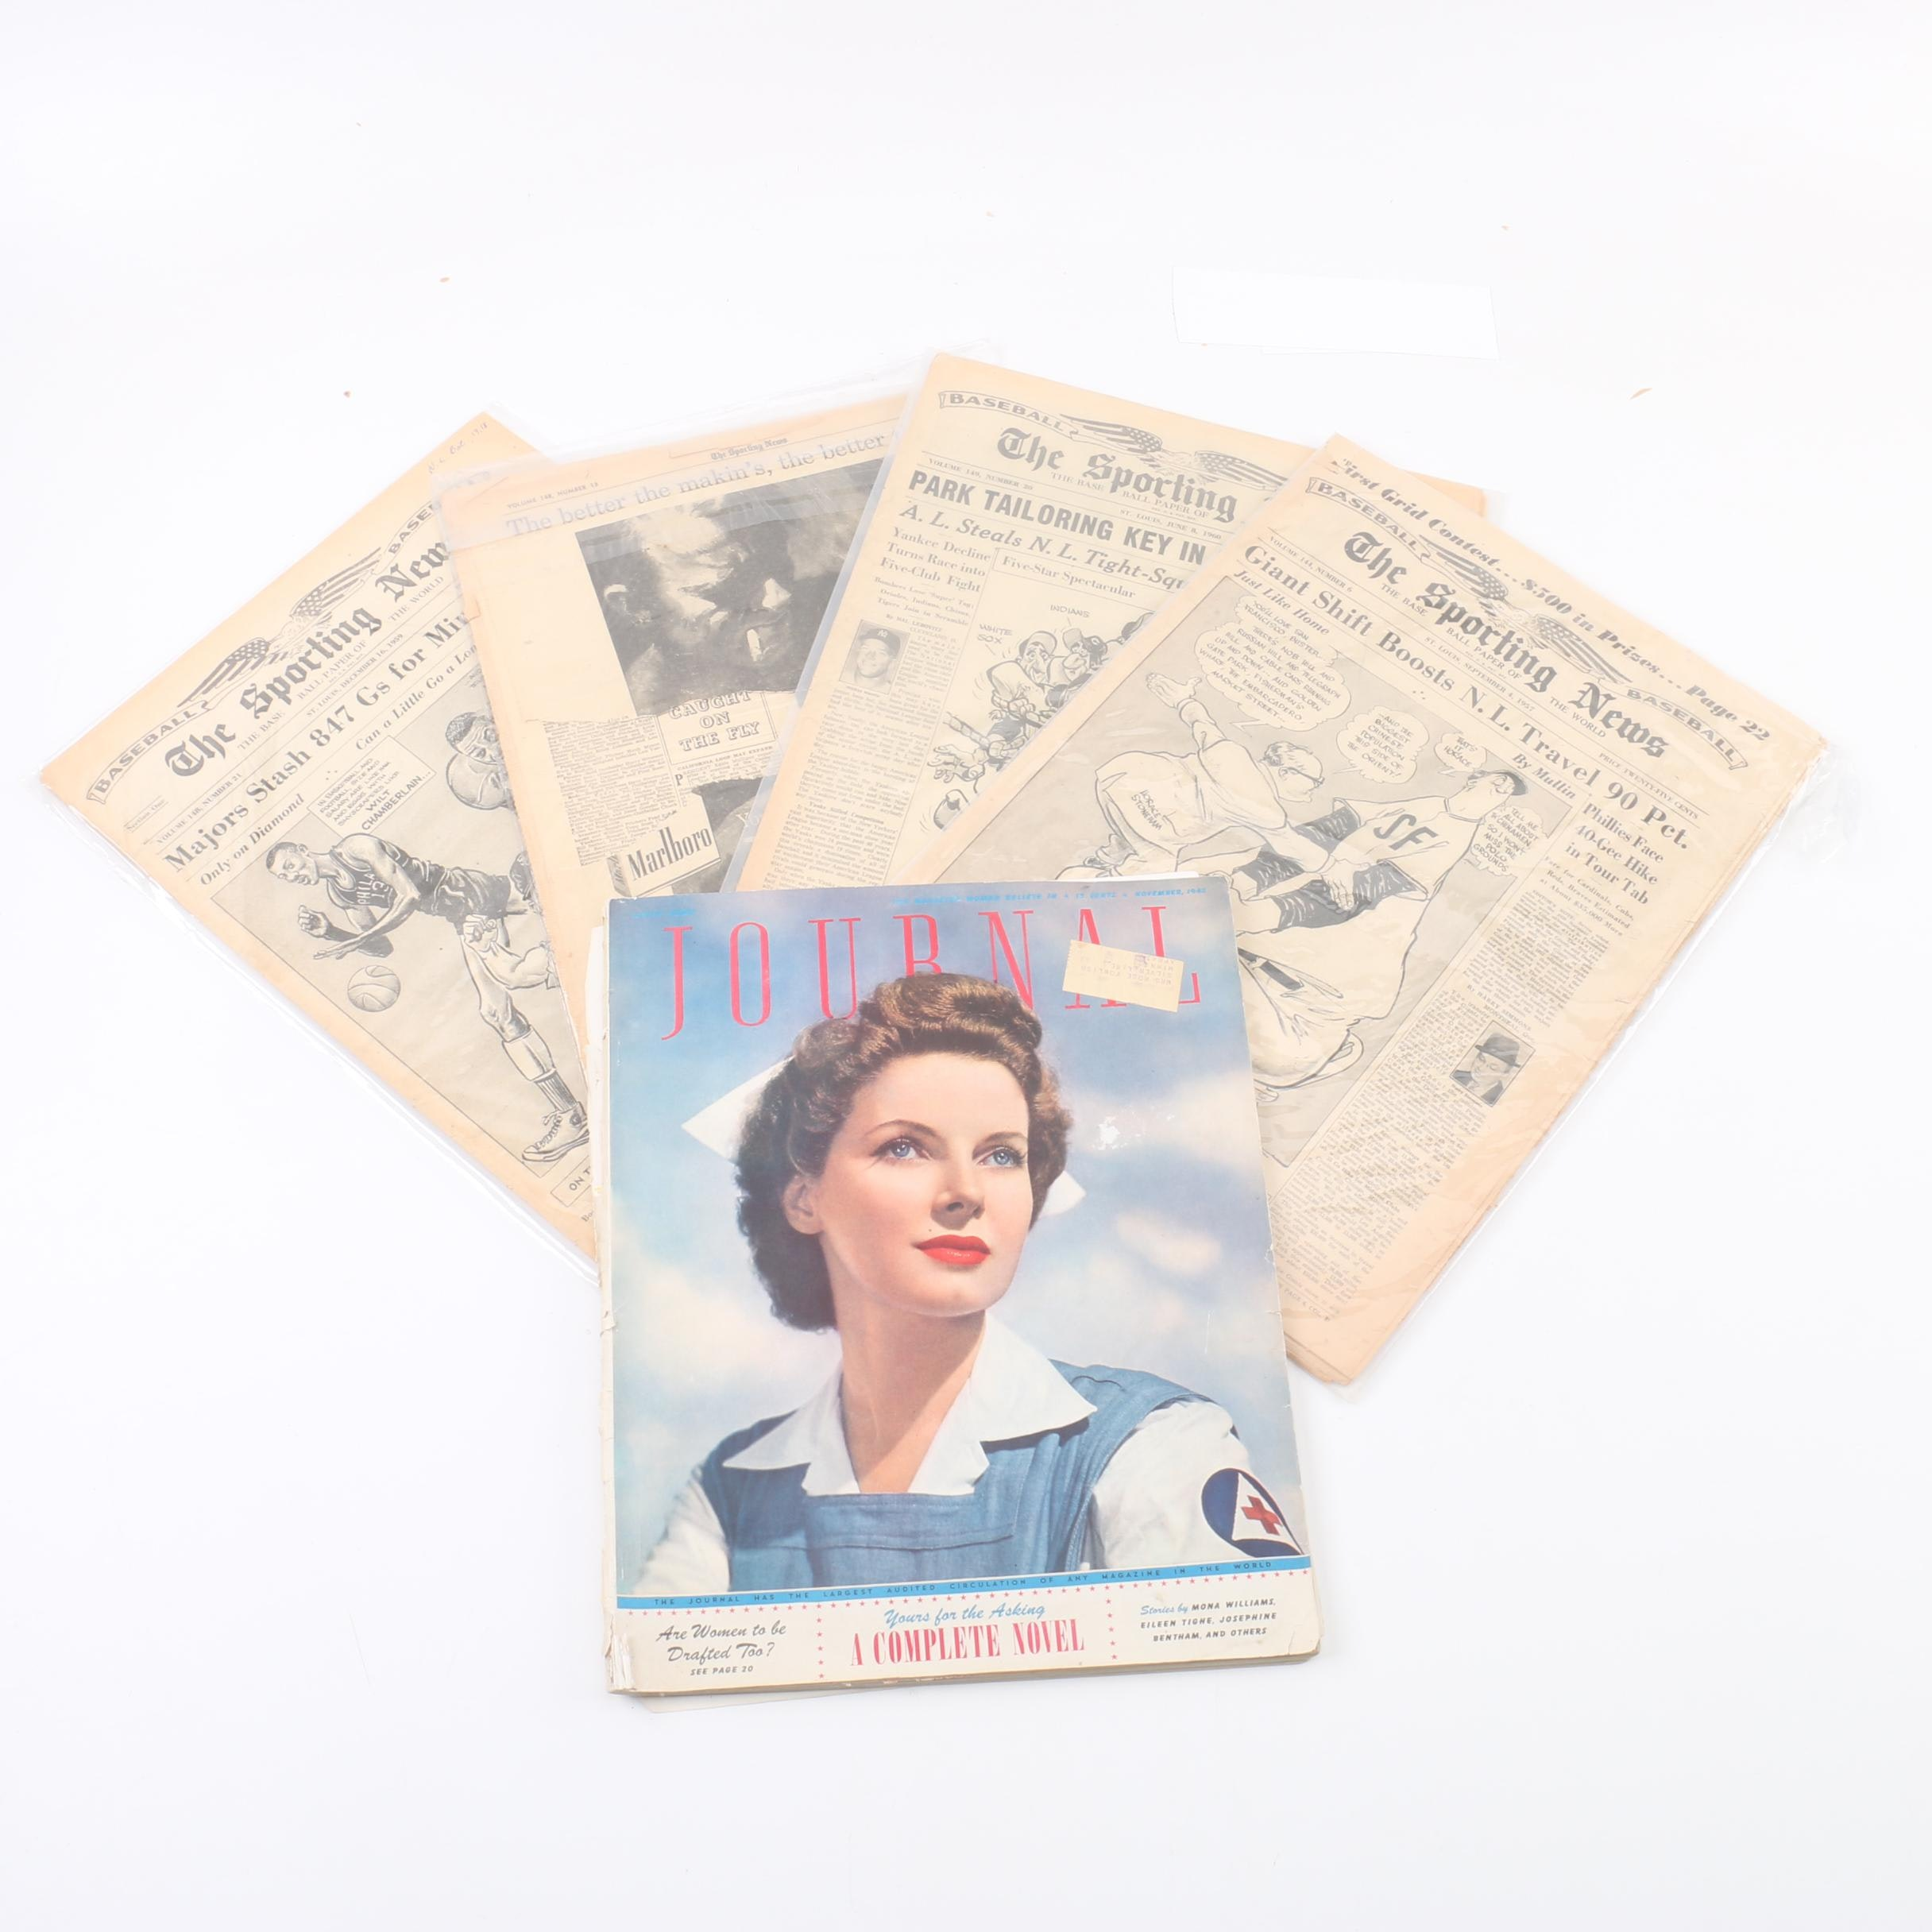 """1942 """"Ladies' Home Journal"""" and Issues of """"The Sporting News"""""""